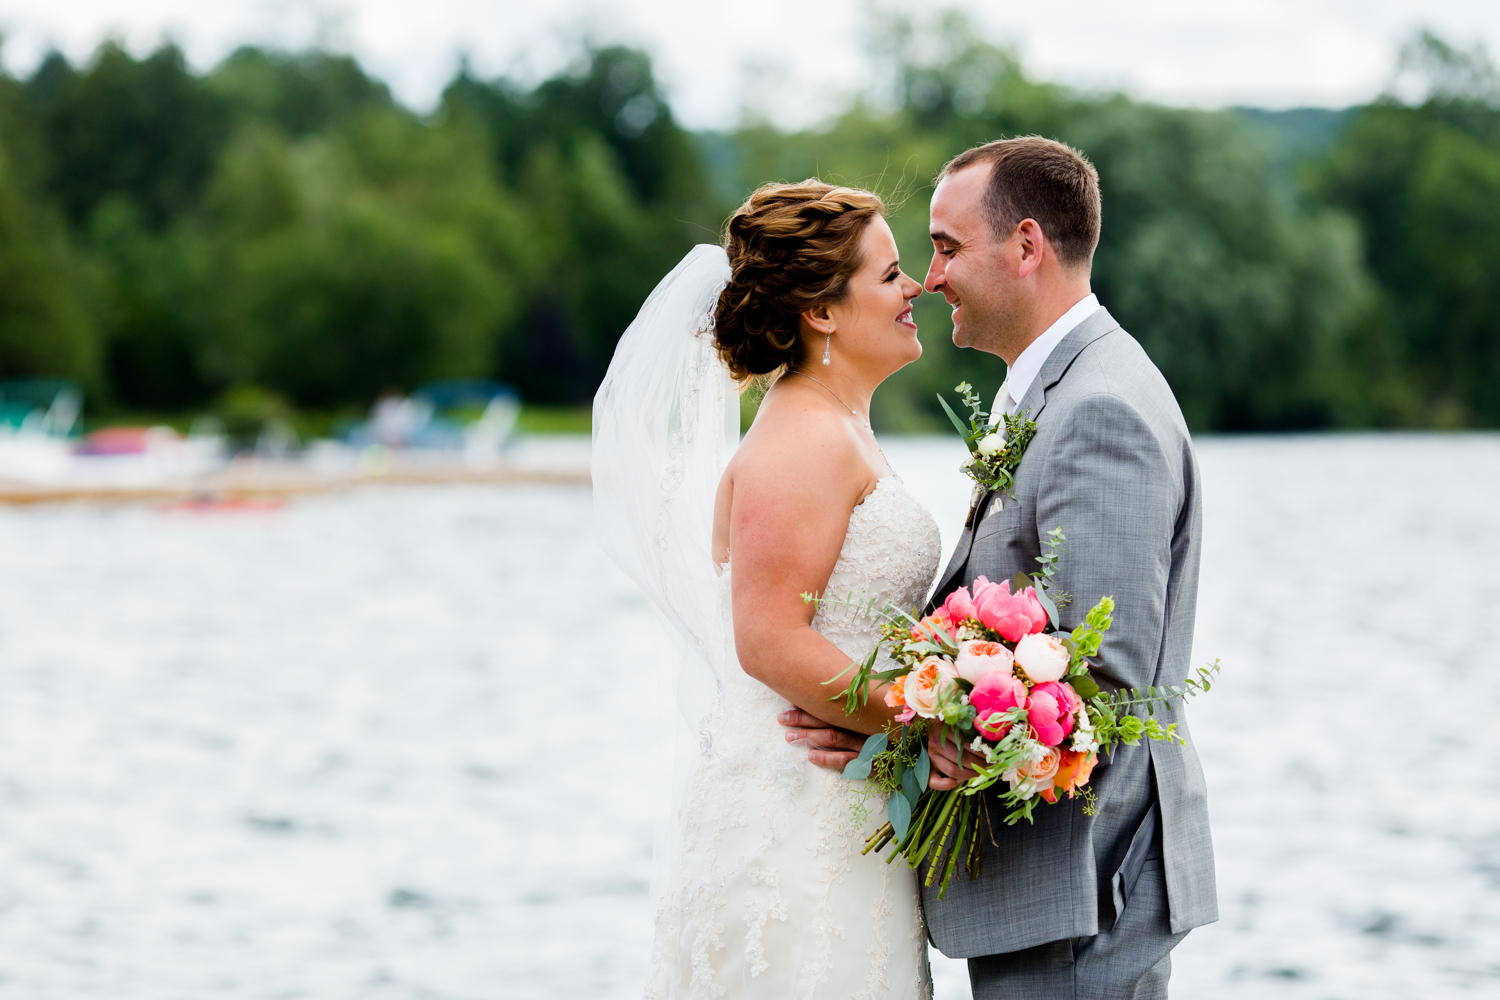 Bride and groom touch noses in front of a lake. Bride holds a bouquet of flowers.